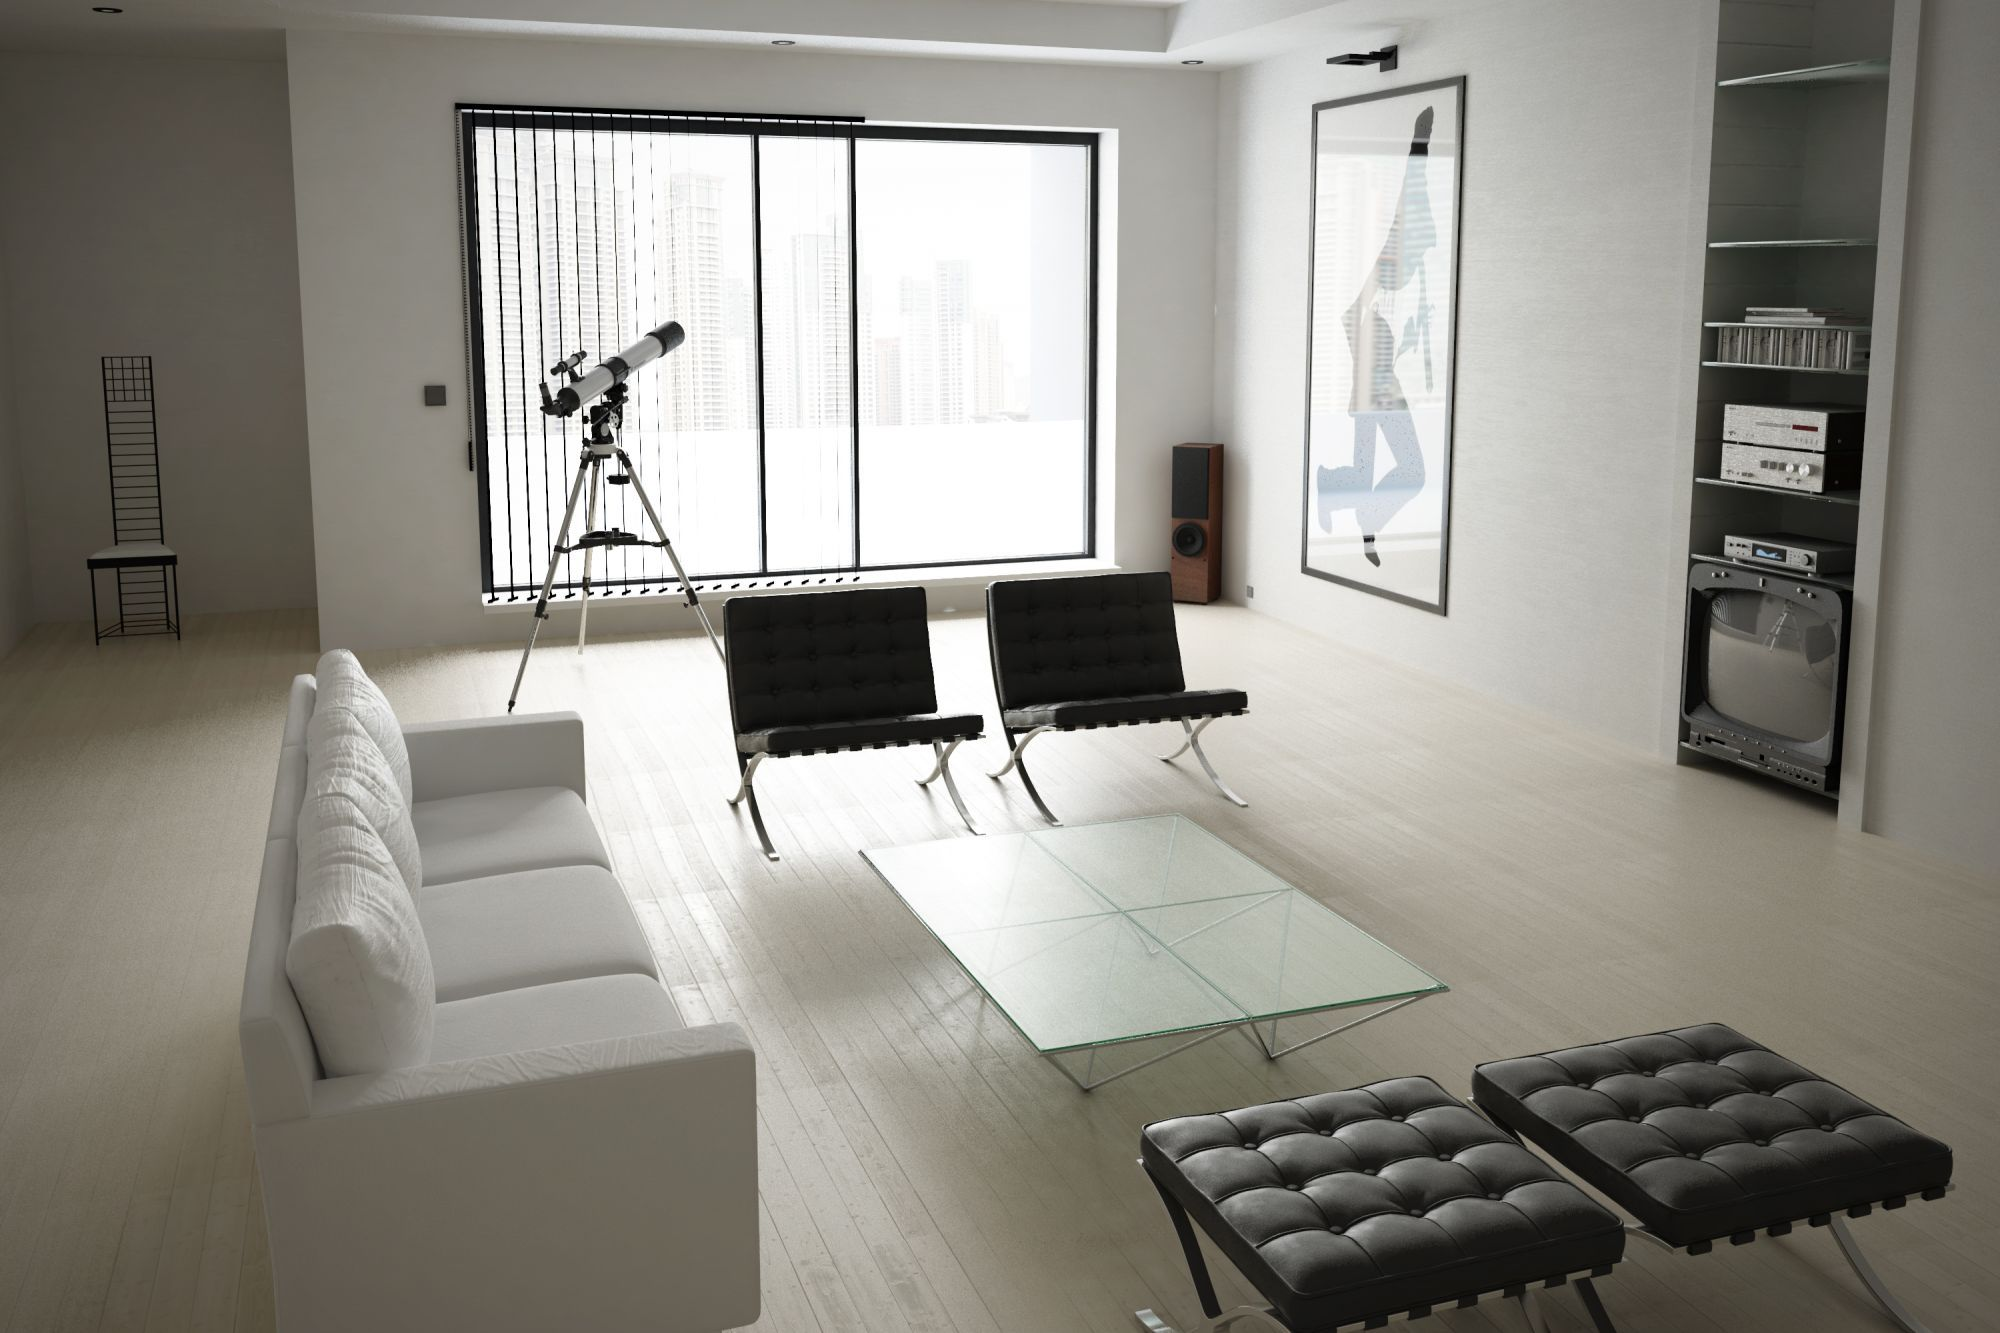 Living Room From American Psycho Movie